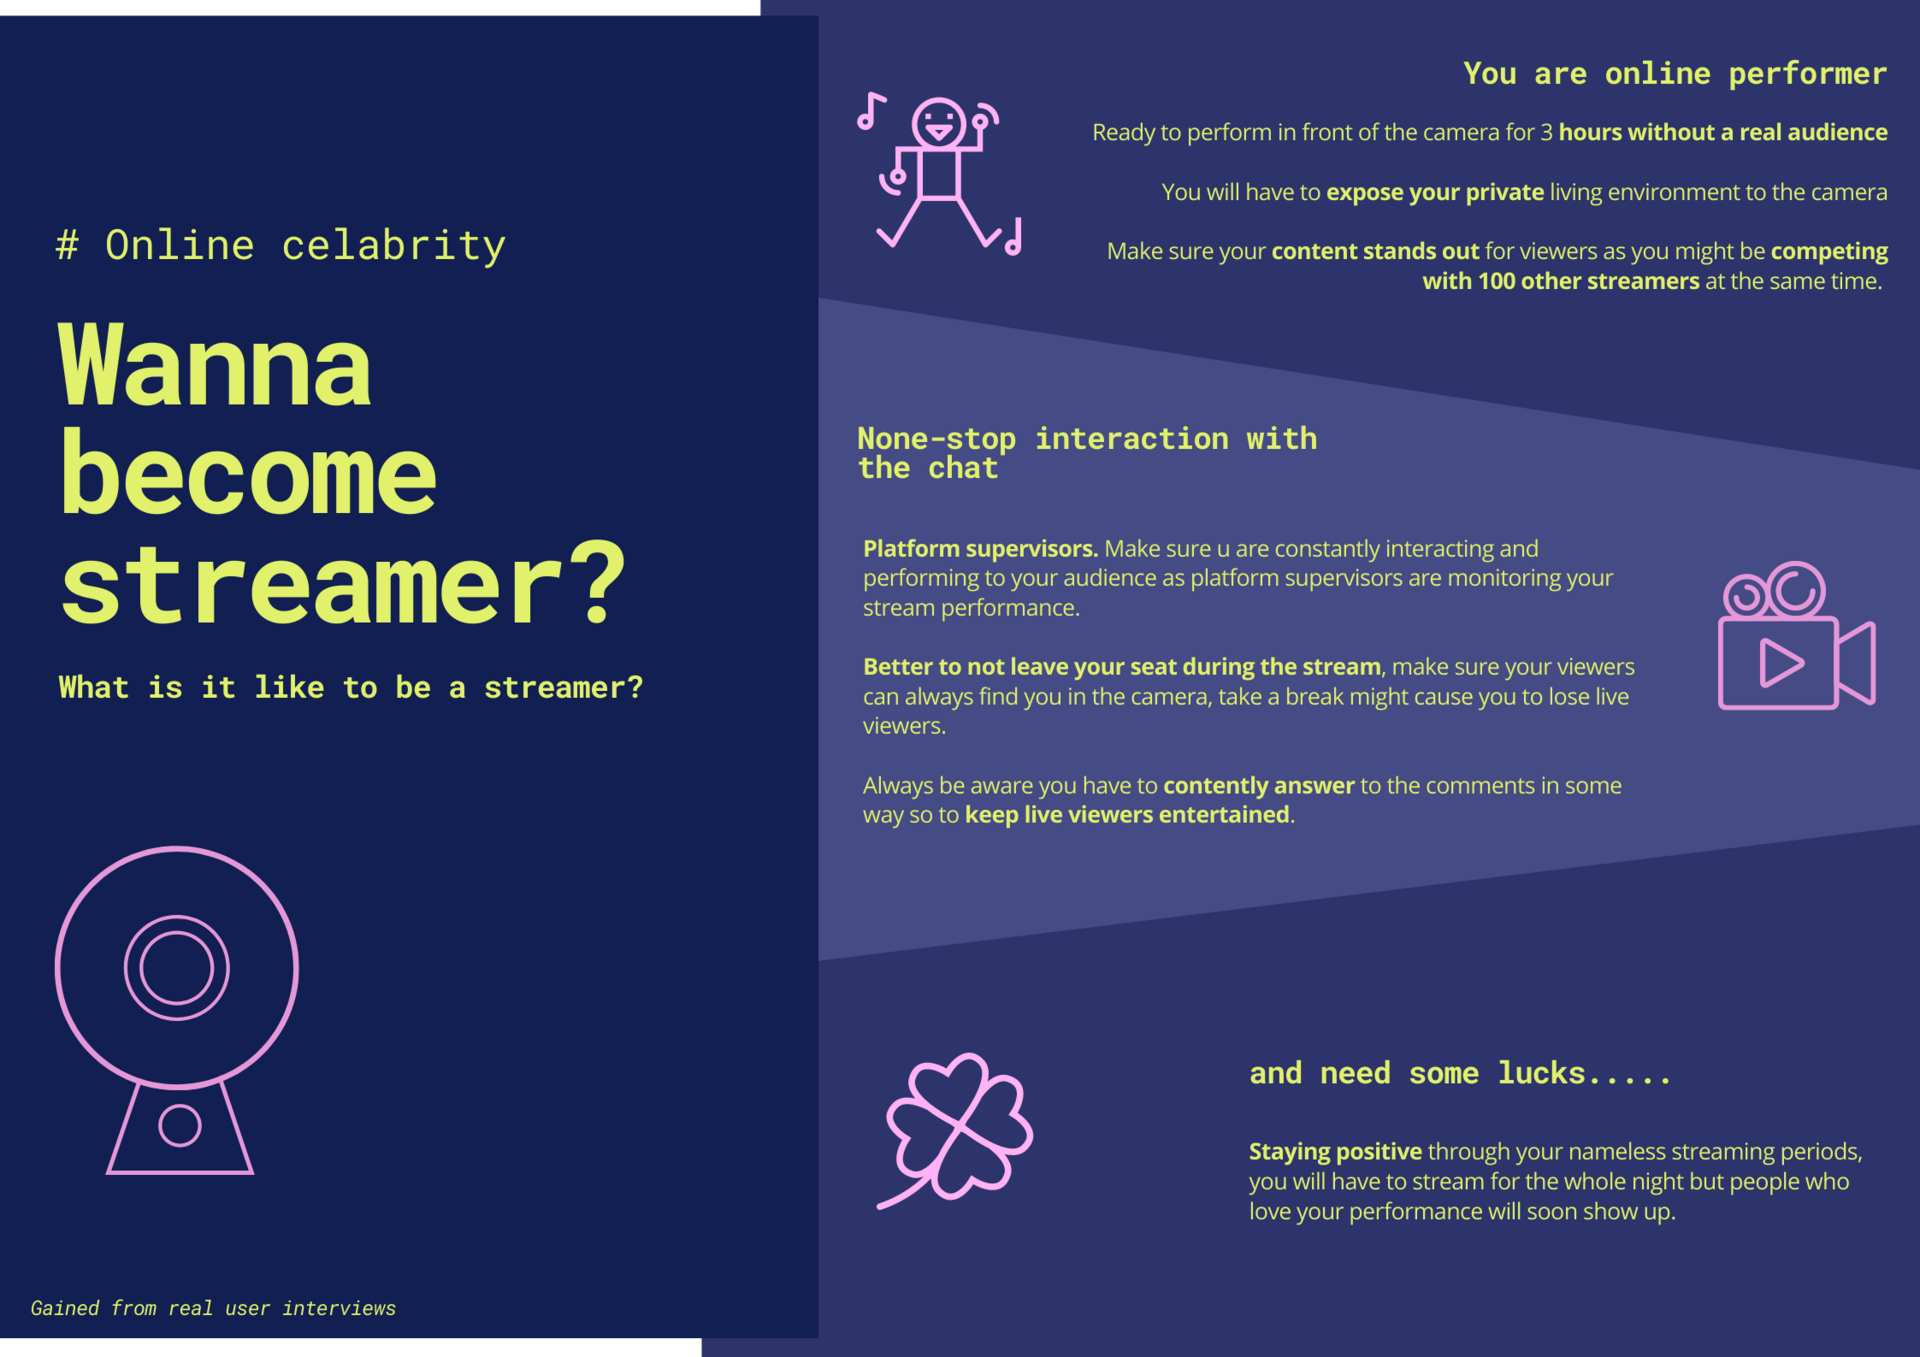 Fictionalized Poster: Streamer work condition insights